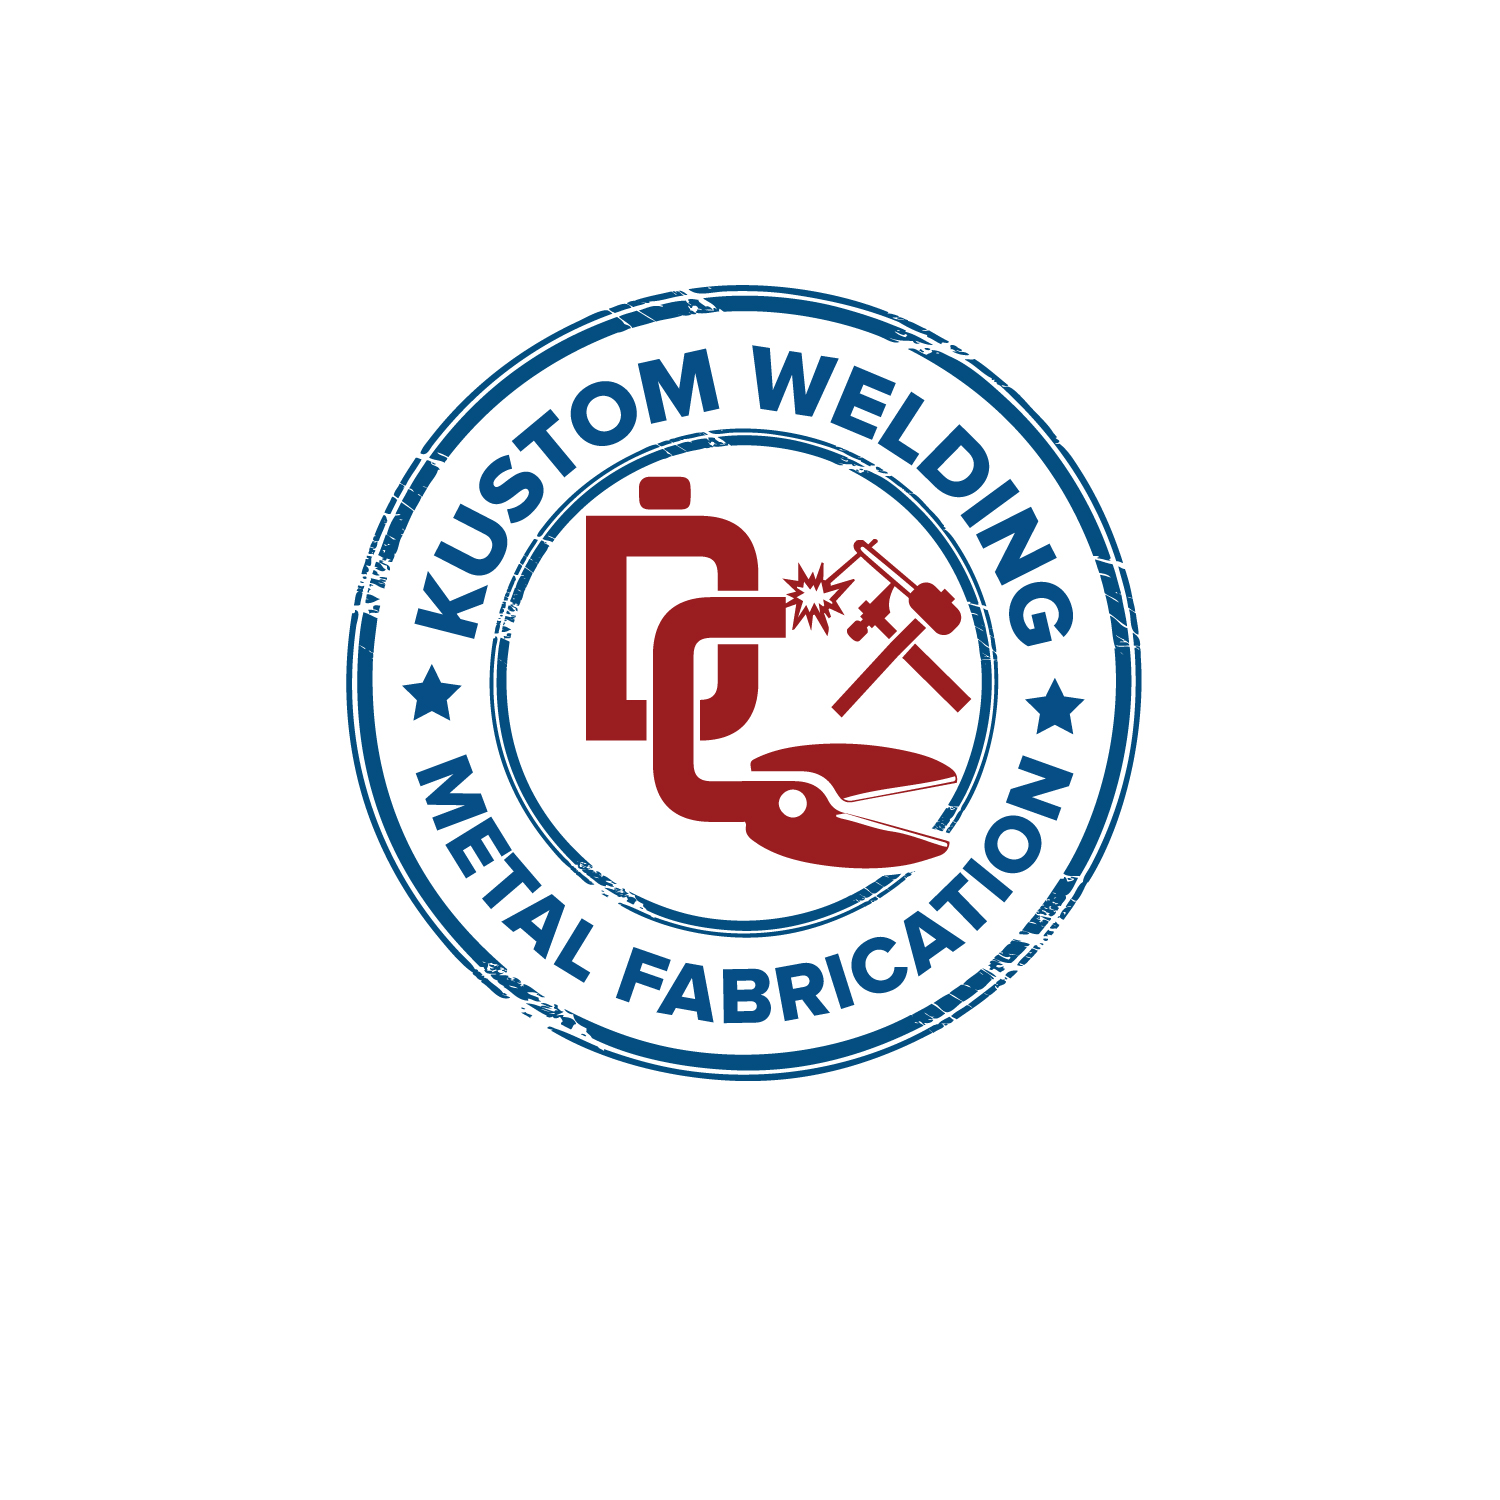 Logo Design by Bac Huu - Entry No. 118 in the Logo Design Contest Imaginative Logo Design for DC KUSTOM WELDING & METAL FABRICATION.